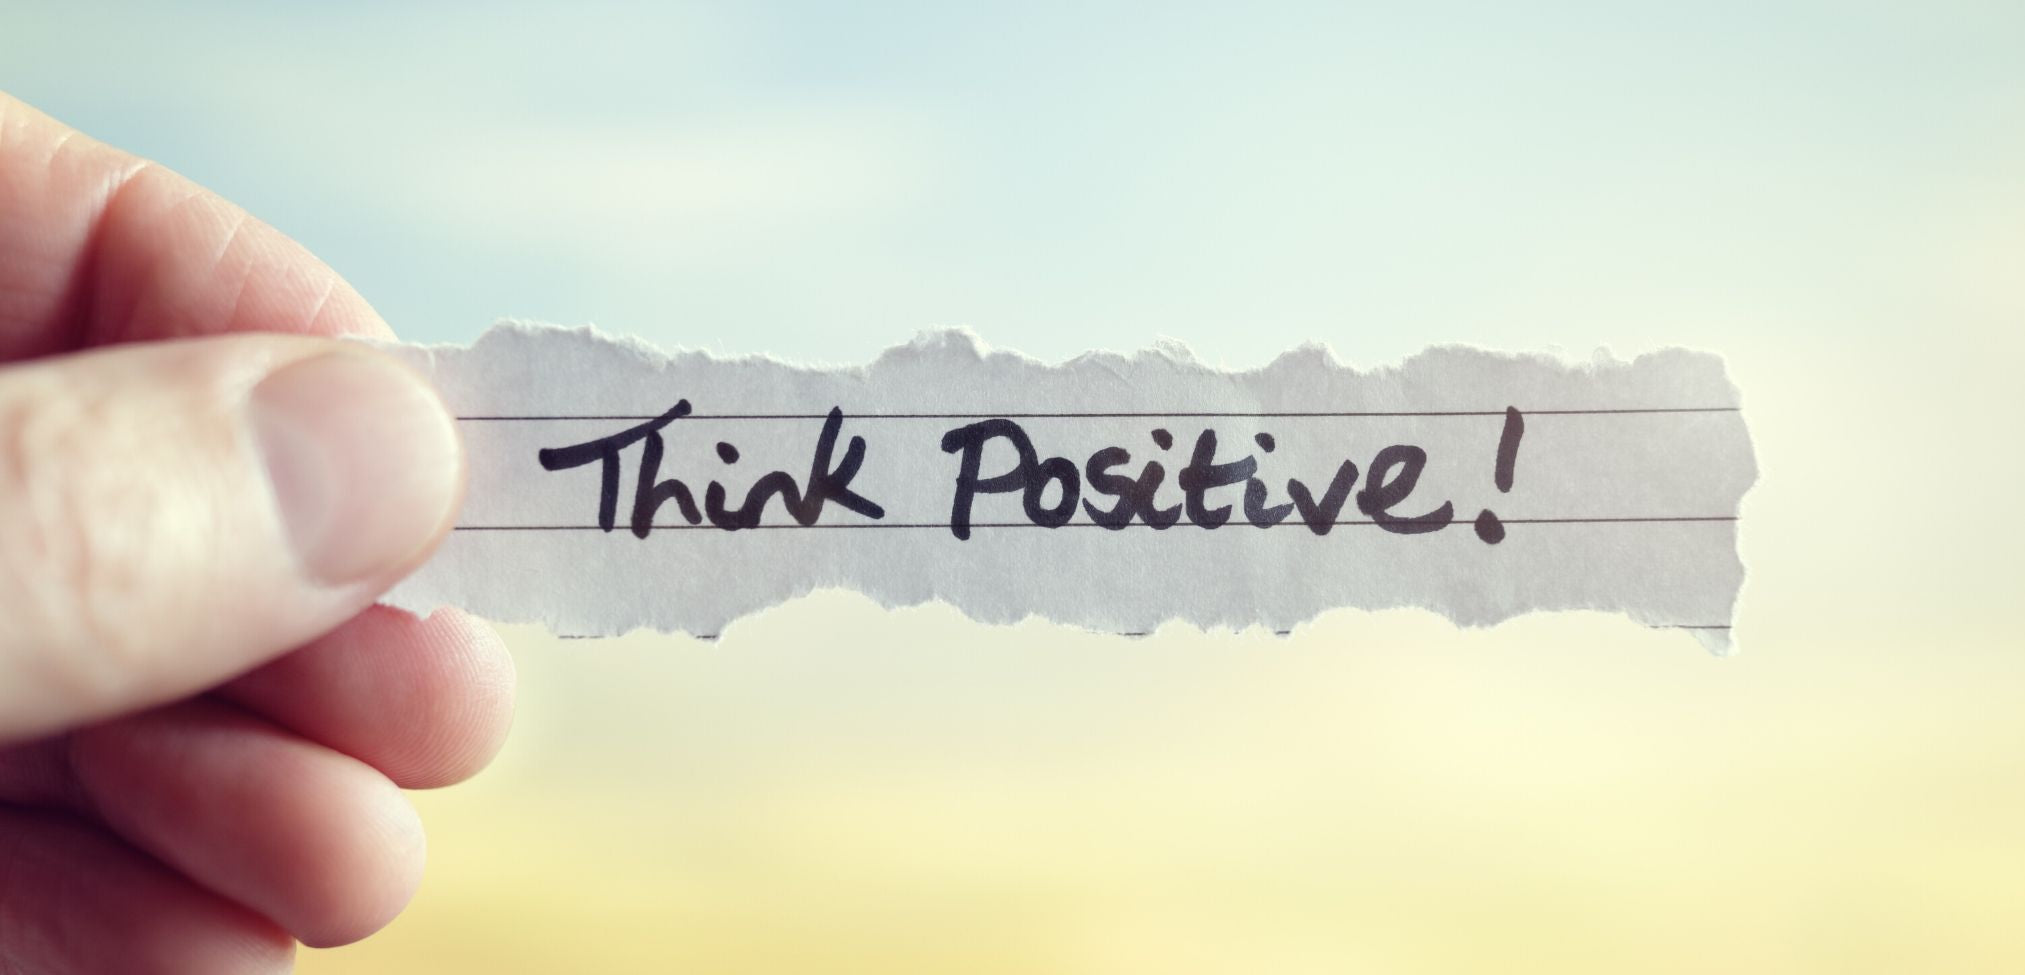 Positive Thinking Improves Mental Wellness